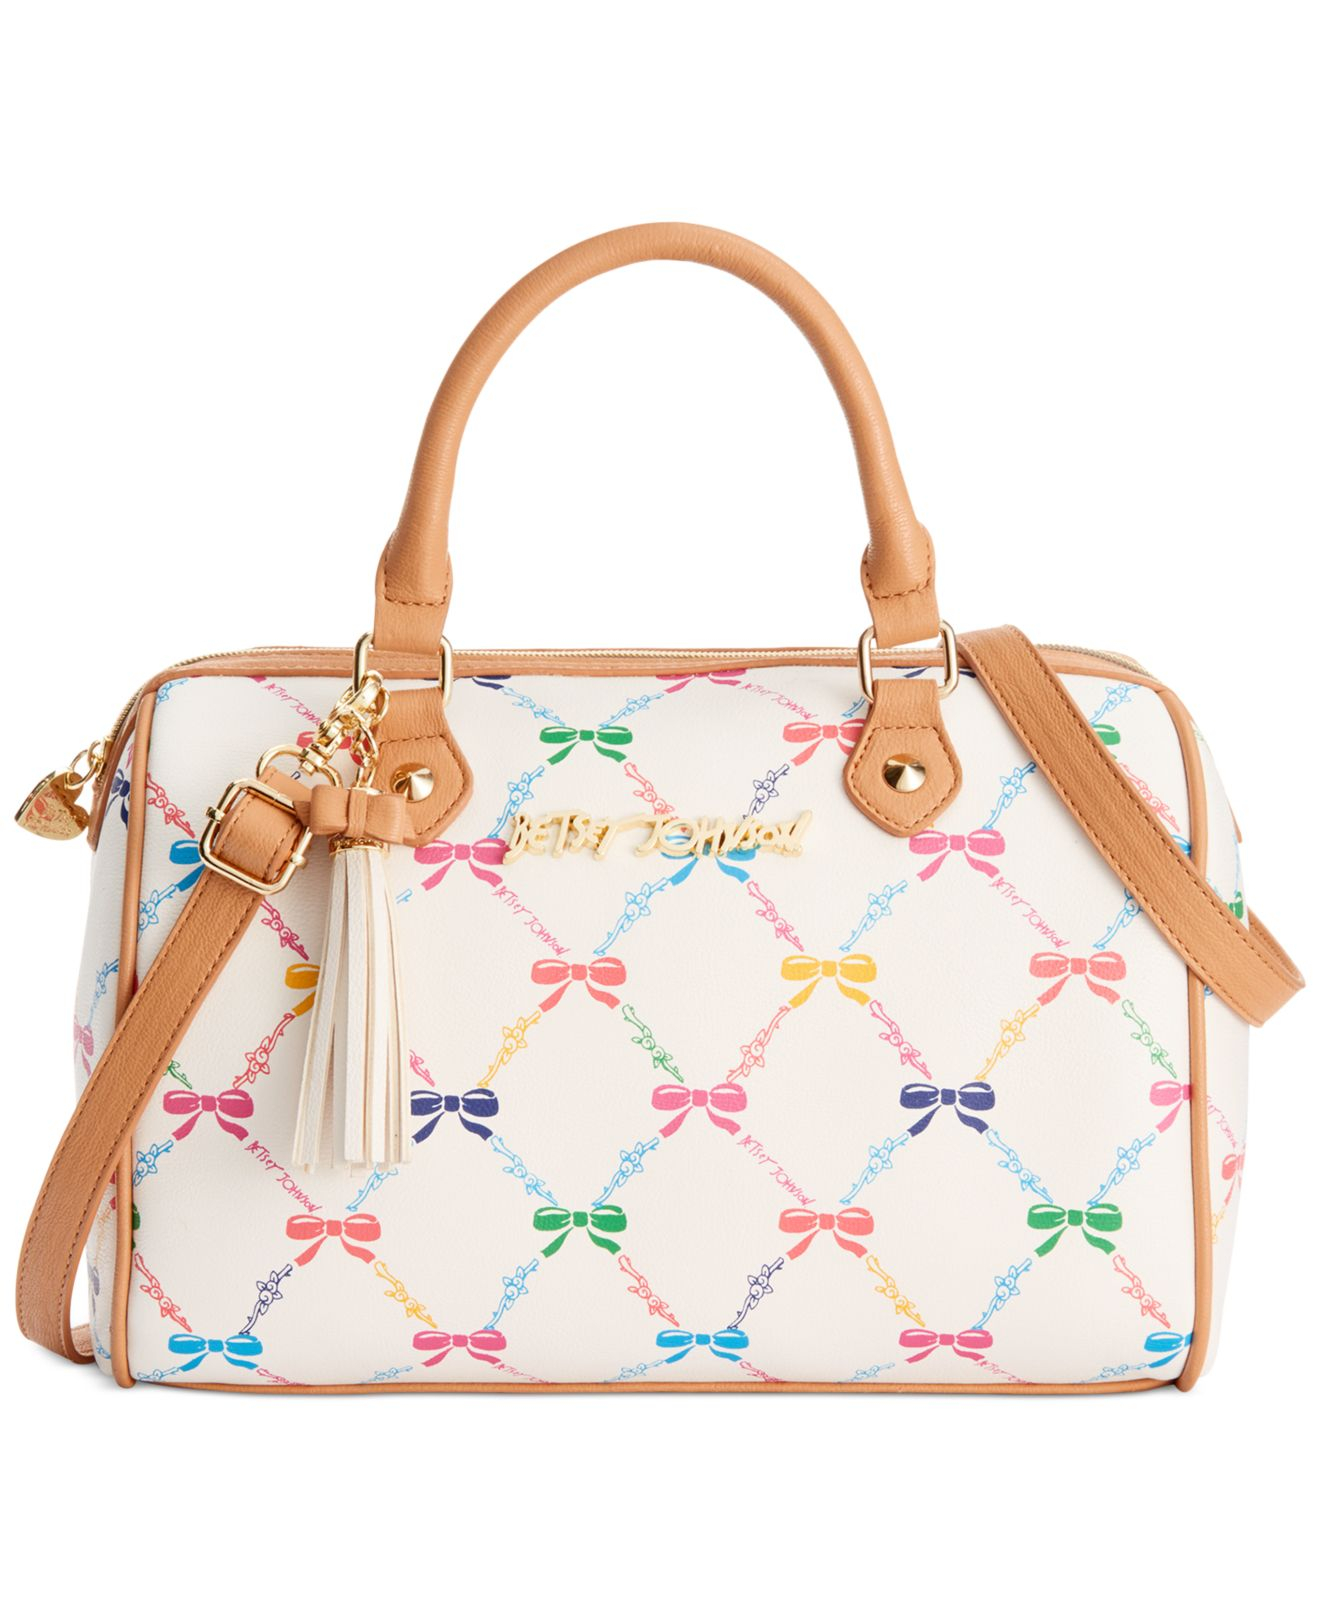 6c2b0d3083 Lyst - Betsey Johnson Let Us Lattice Bow Print Satchel in Natural